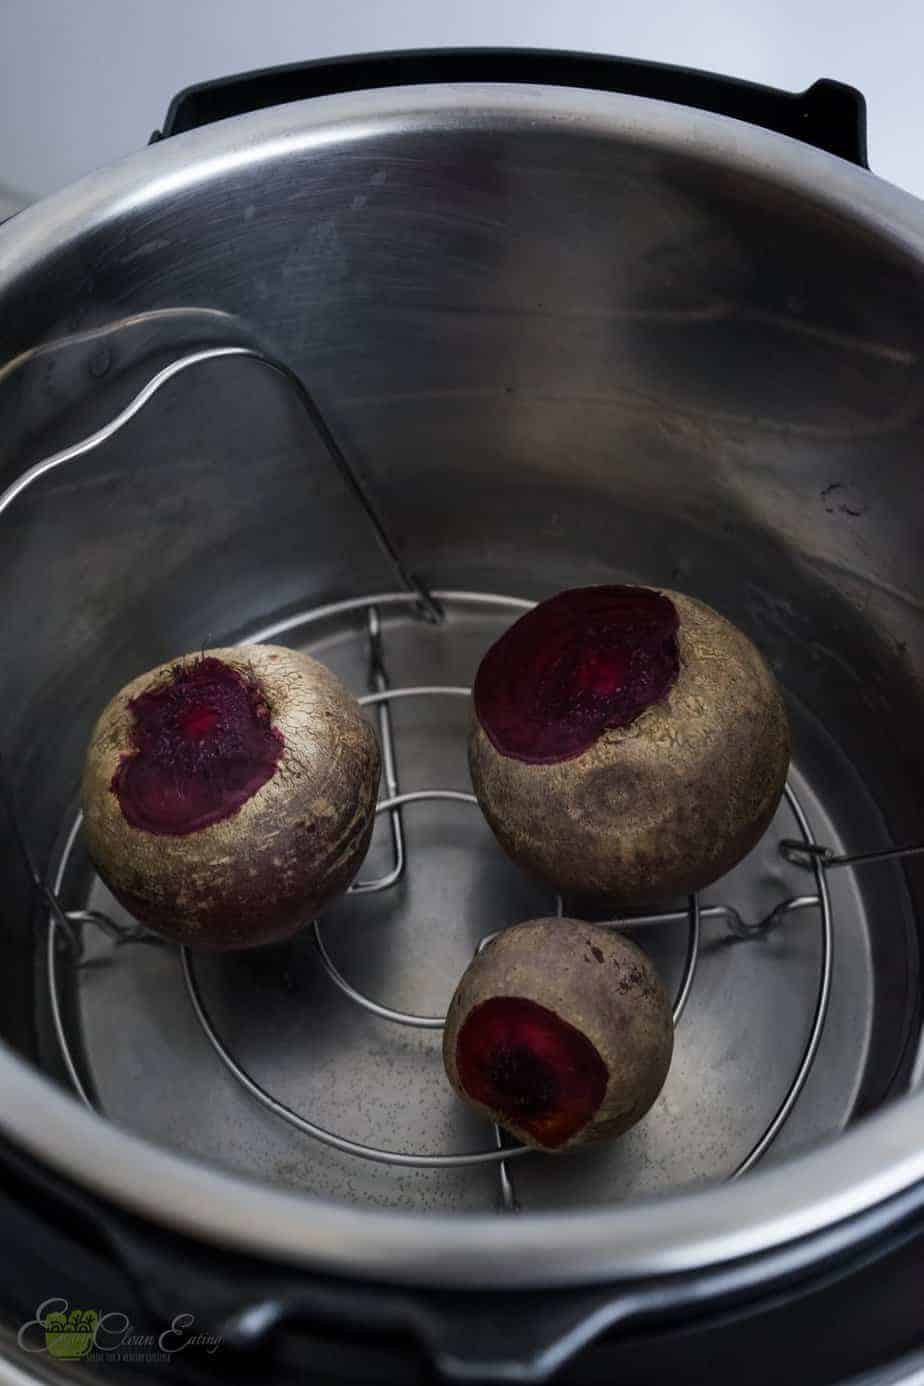 raw beets inside the pressure cooker with water before cooking.